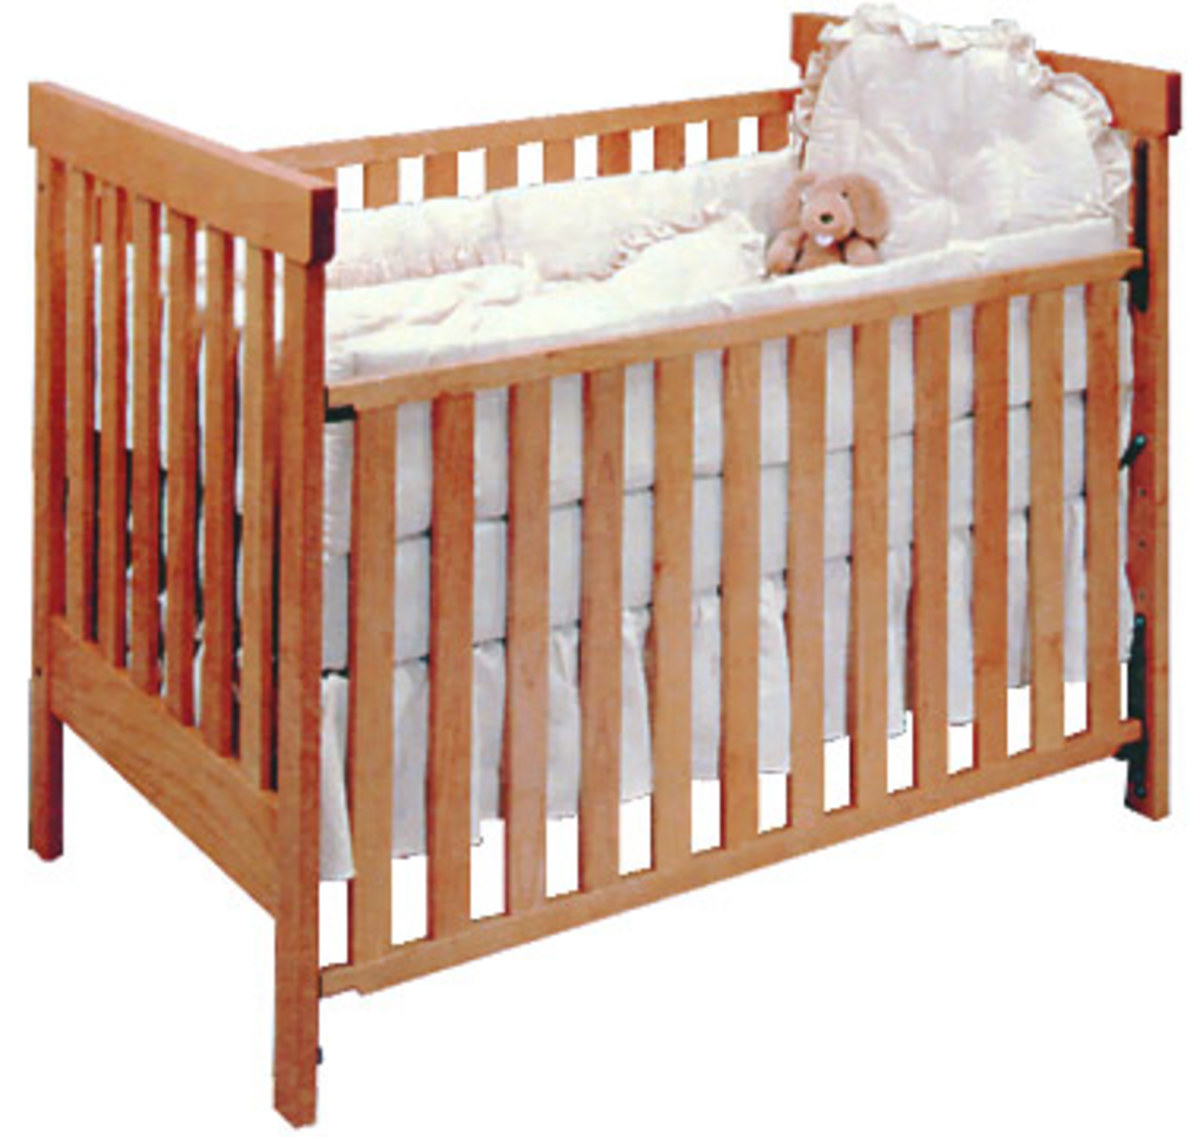 How To Choose A Safe Crib Mattress For Your Baby